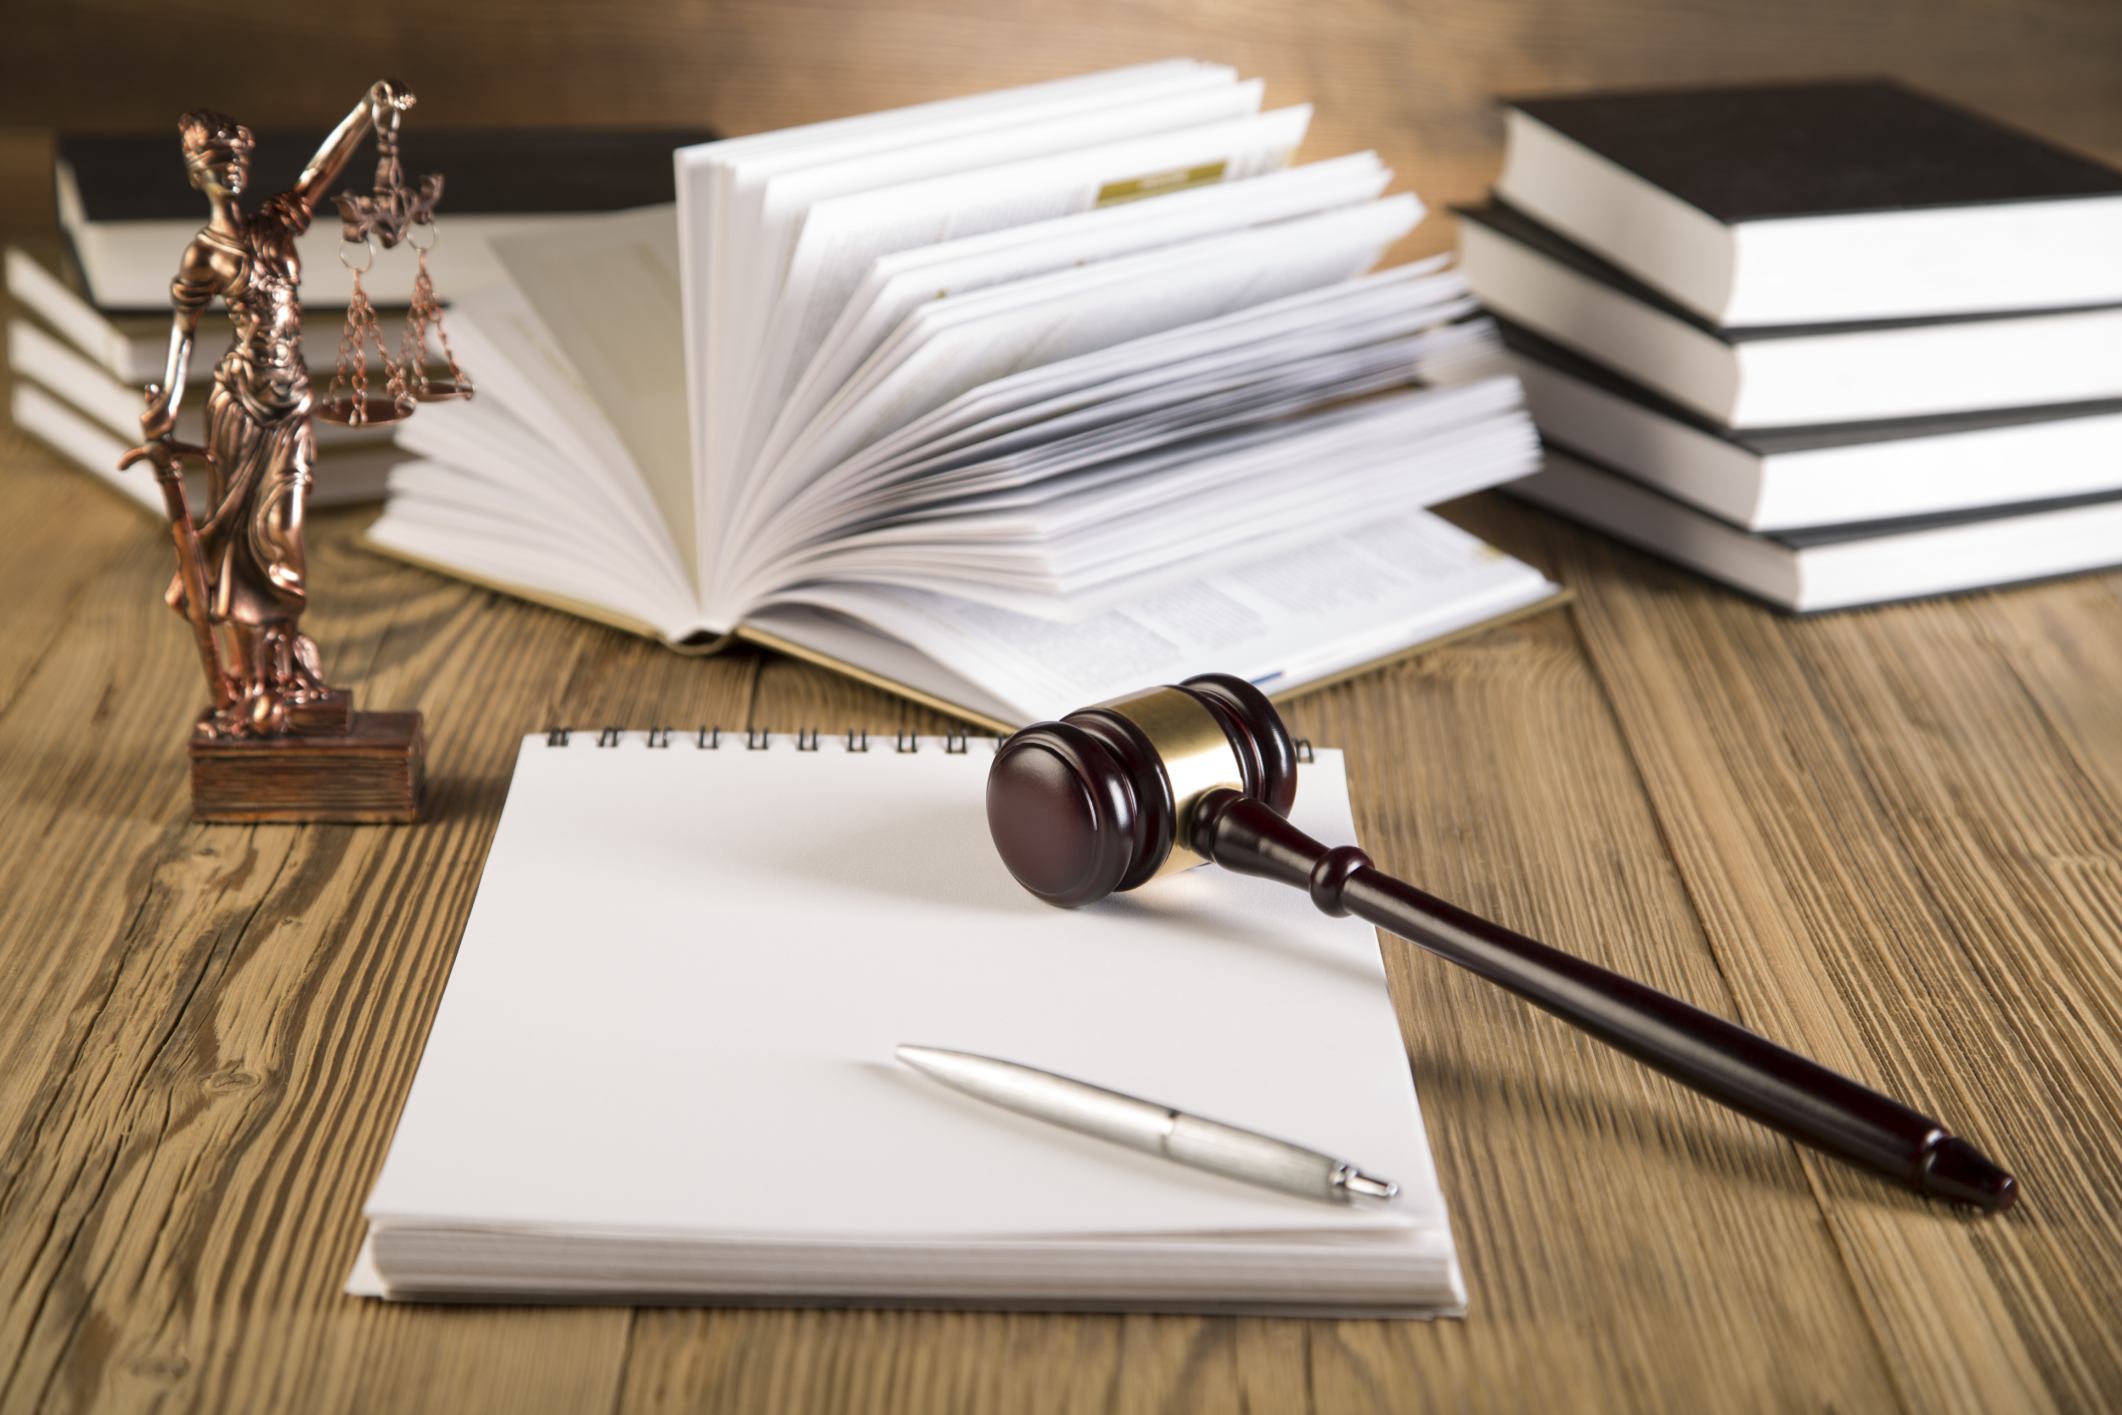 Can a Lawsuit Settlement Offer Be Rescinded? | Bizfluent